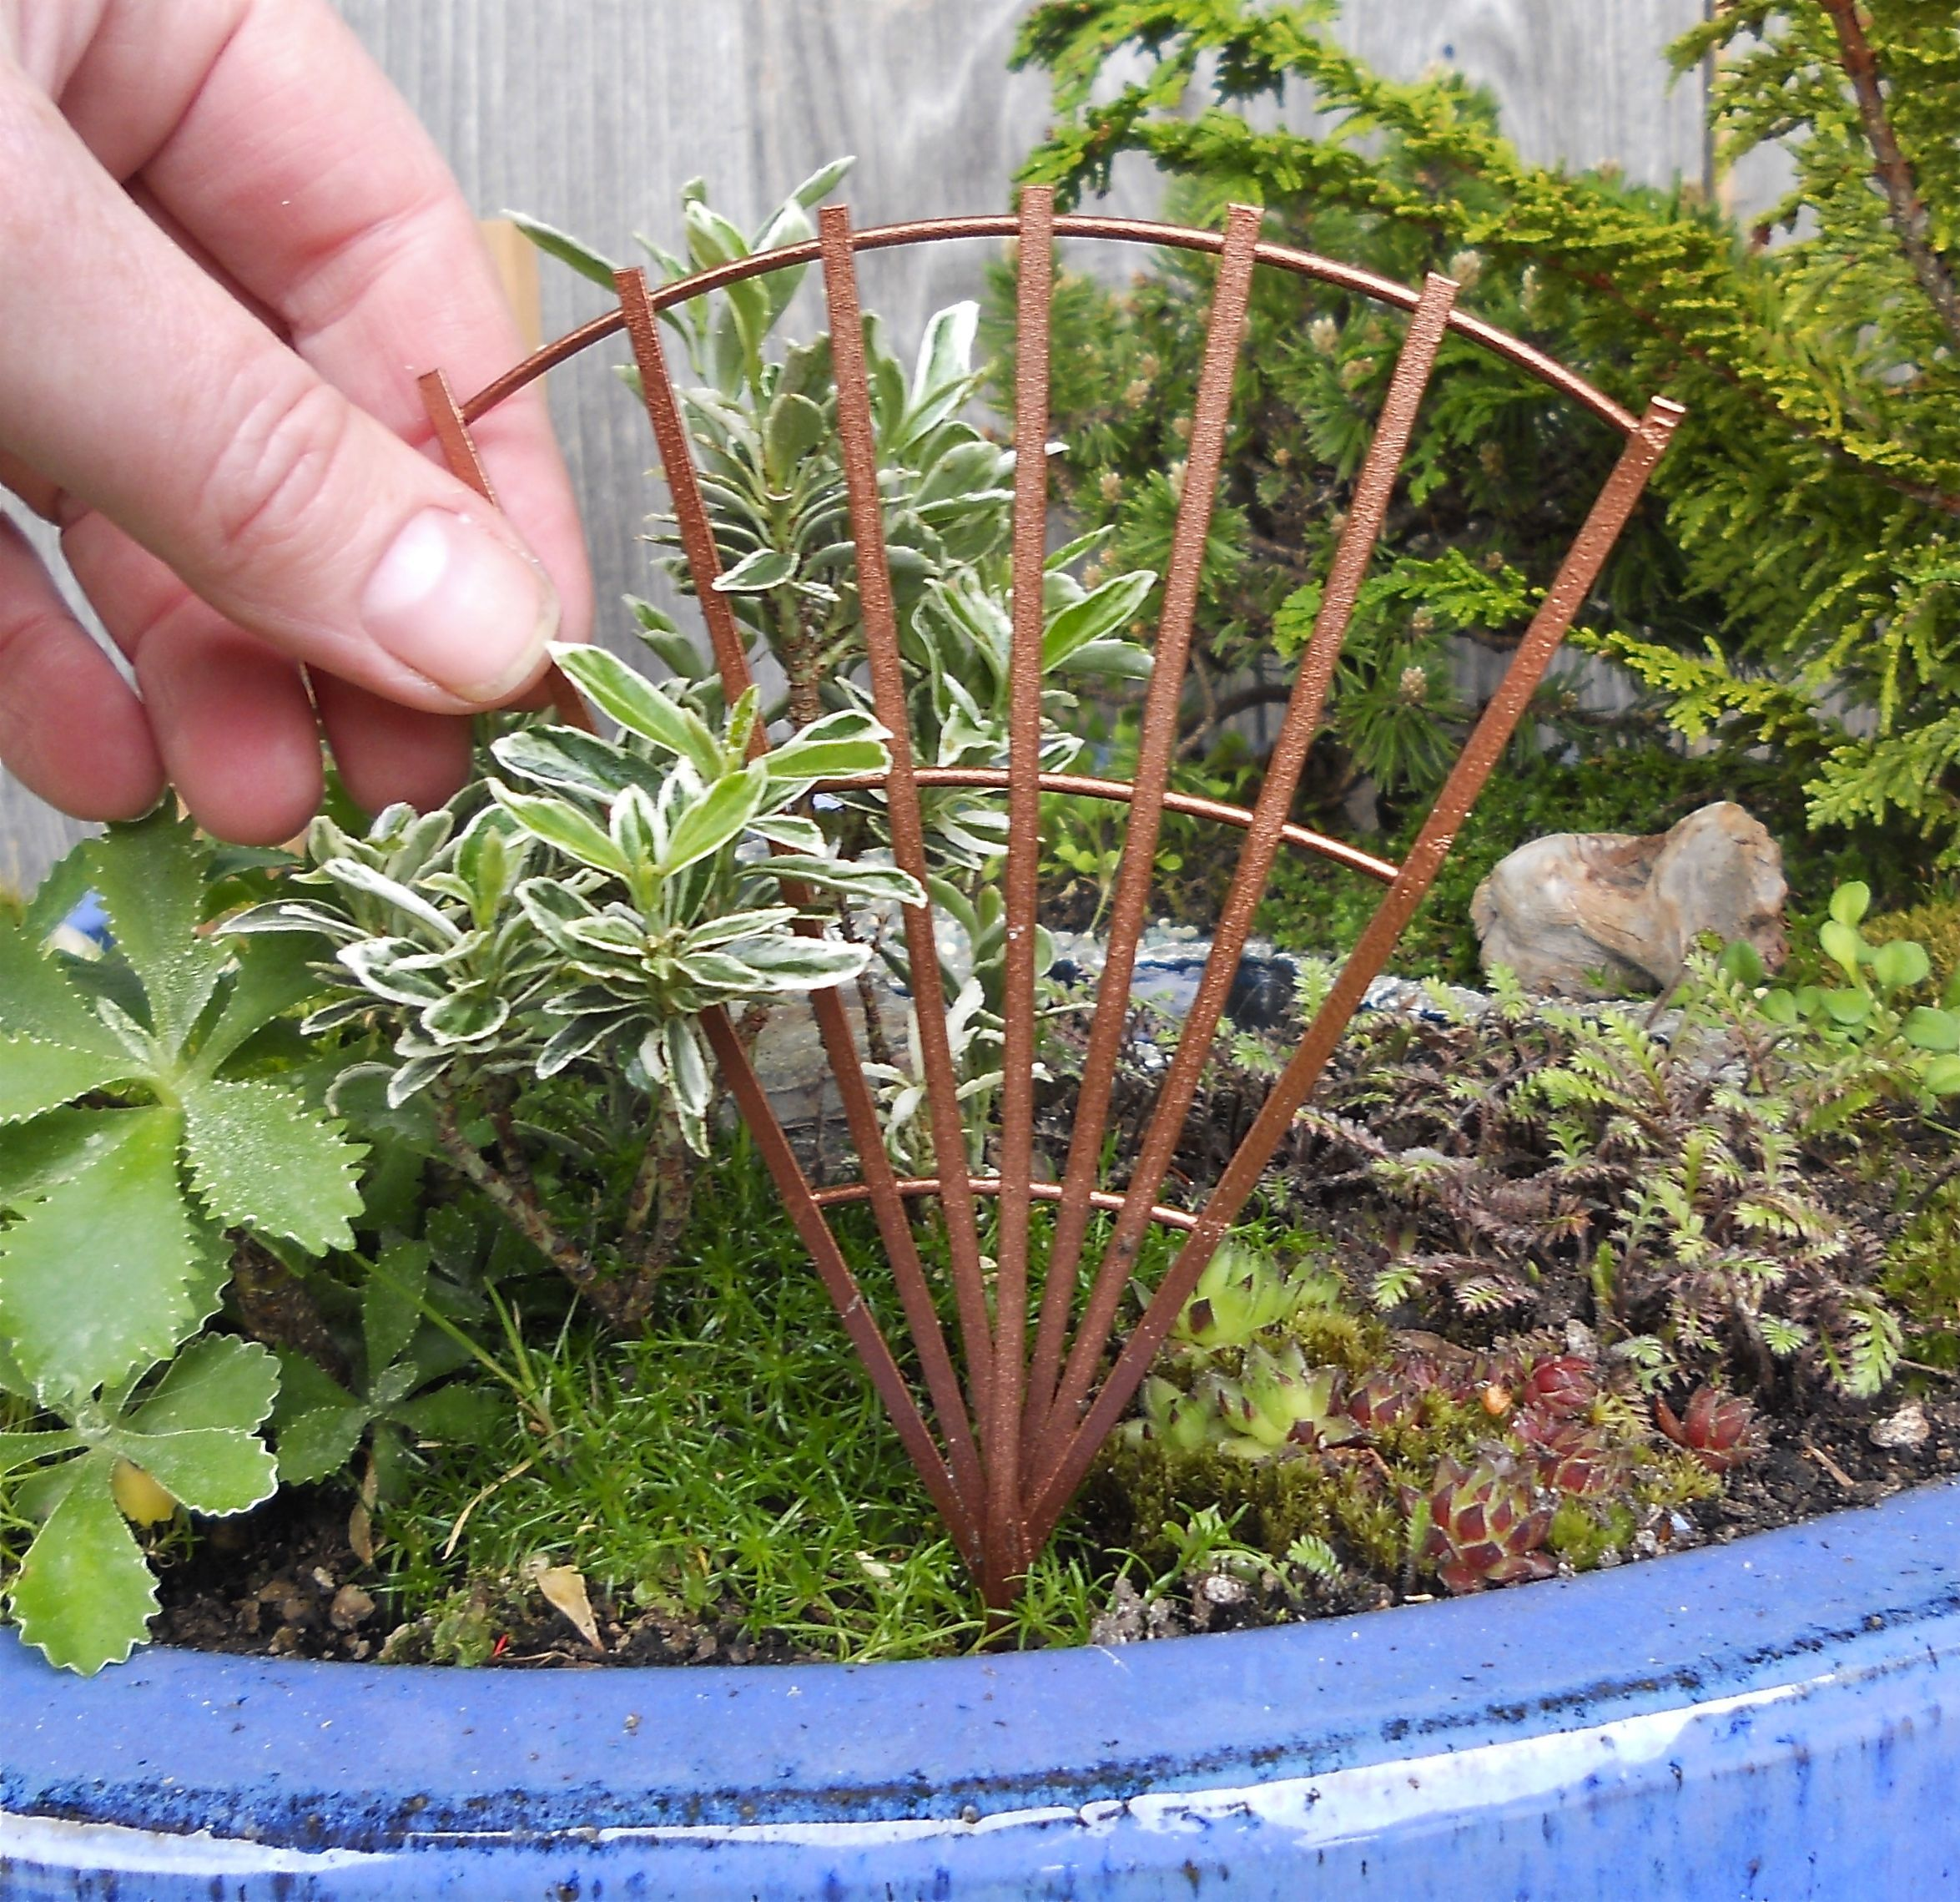 New Miniature Garden Plants & Accessories for the New Hobby